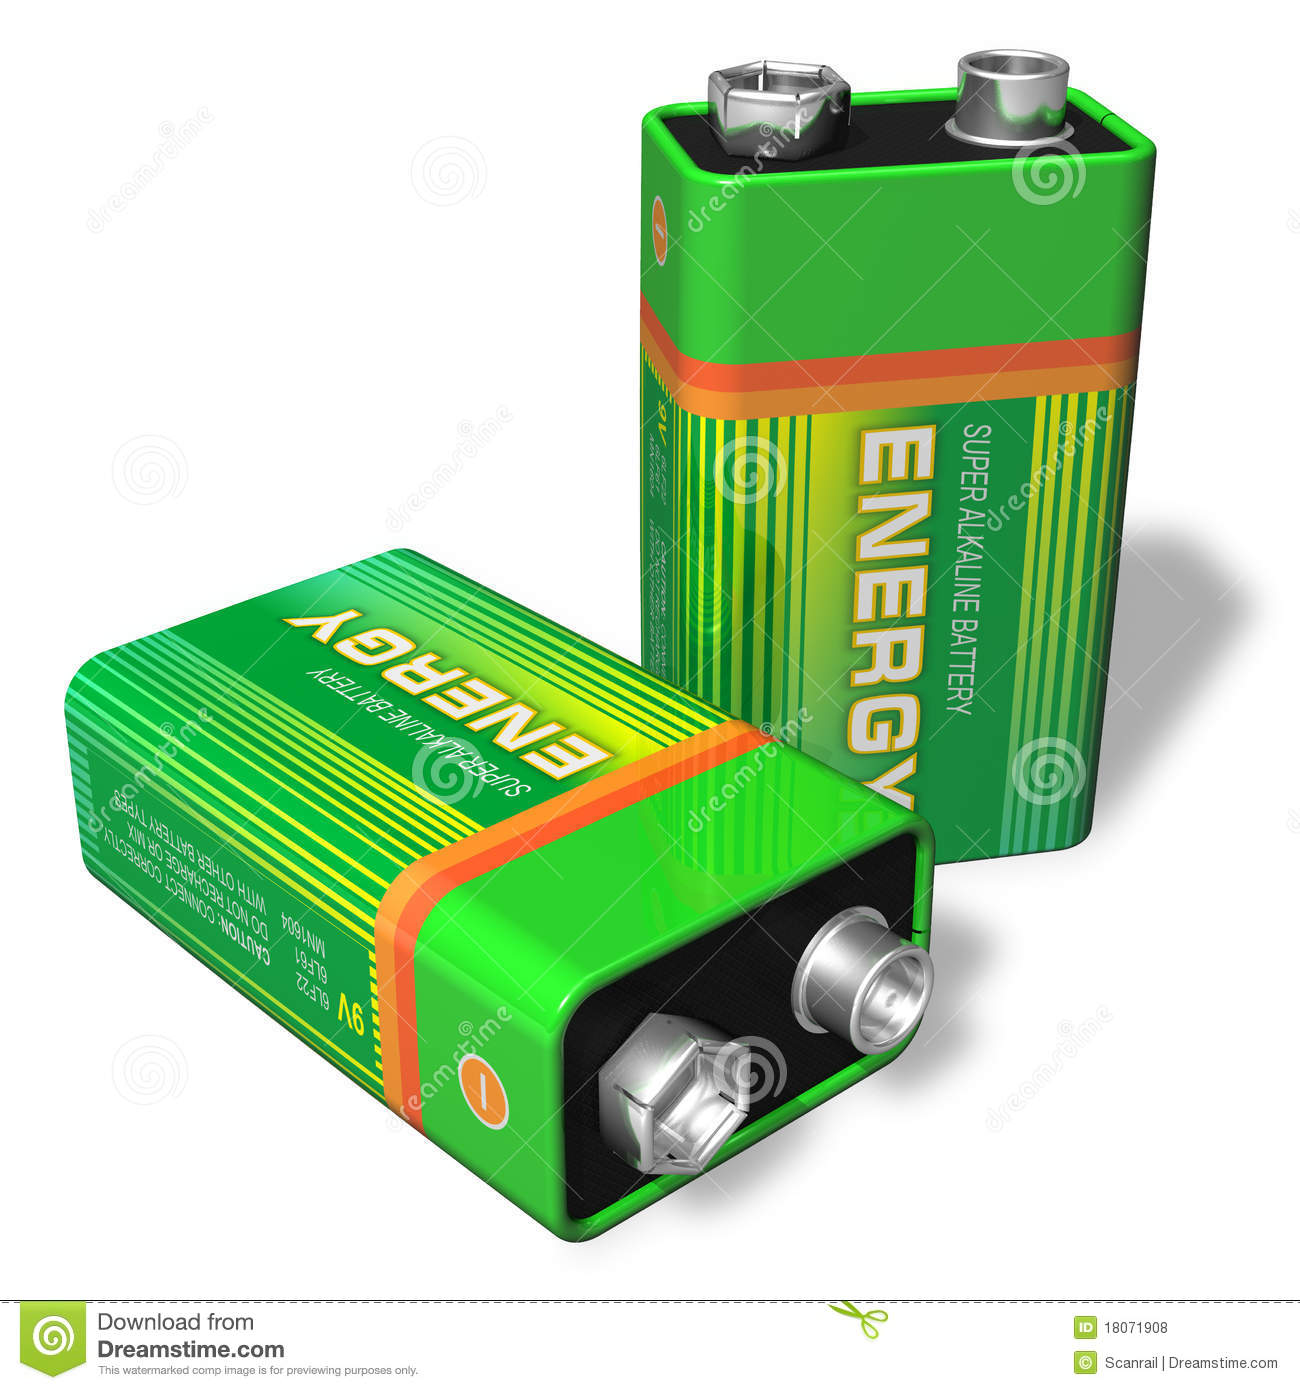 Batterie 9v 9v Batteries Royalty Free Stock Photos Image 18071908